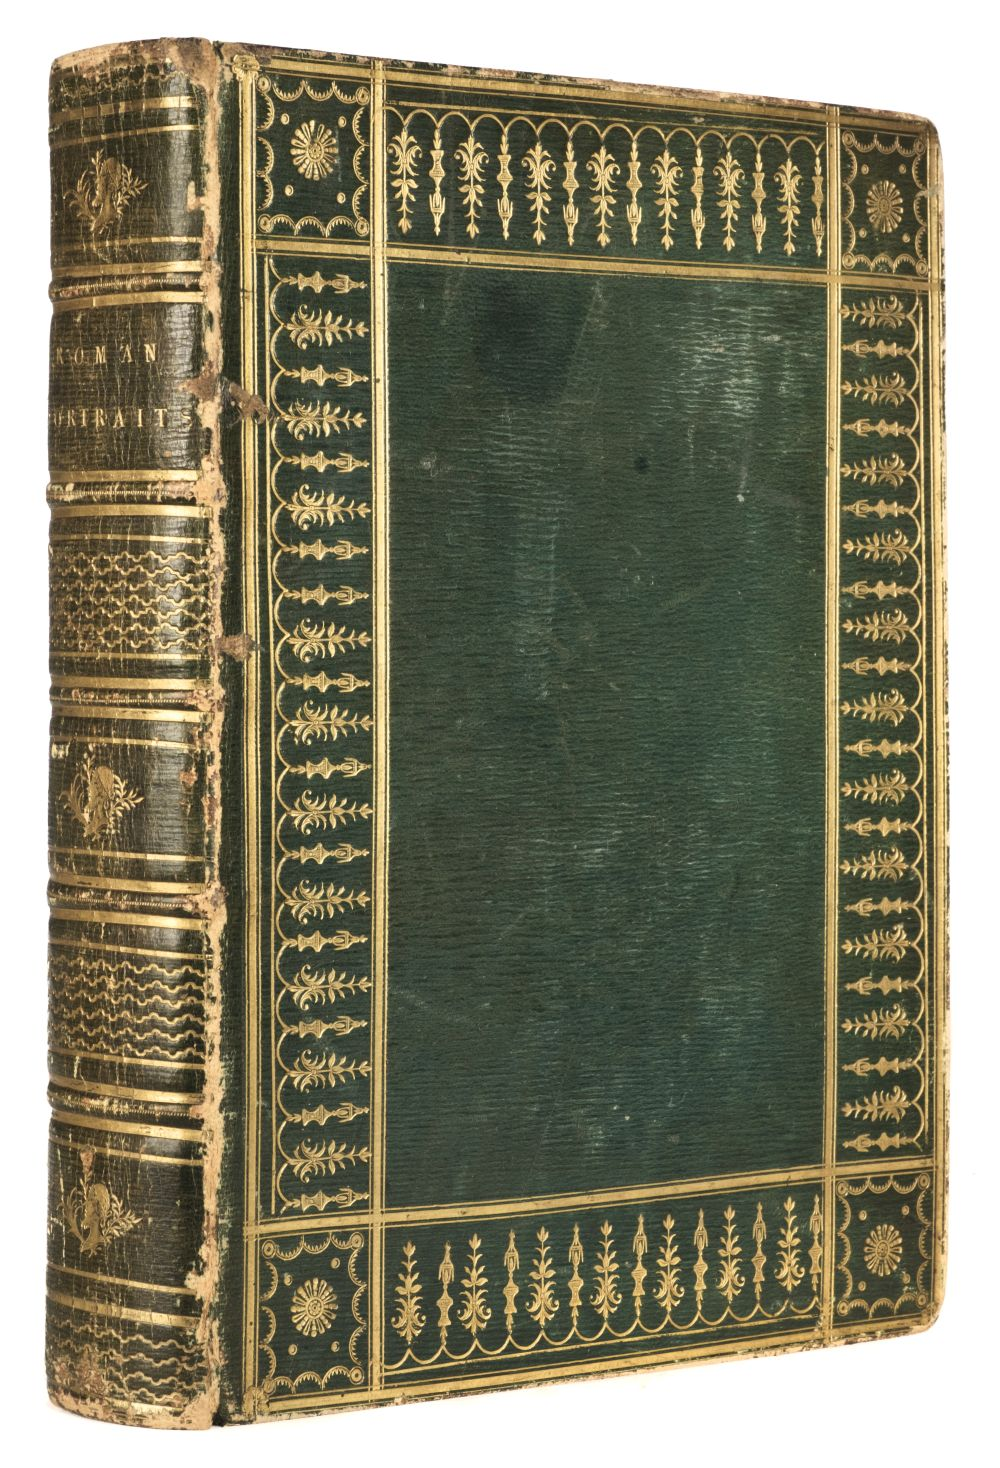 Manuscript. An Explanation of Dassier's Medals, by Charlotte Hanbury, circa 1795-1800 - Image 3 of 3